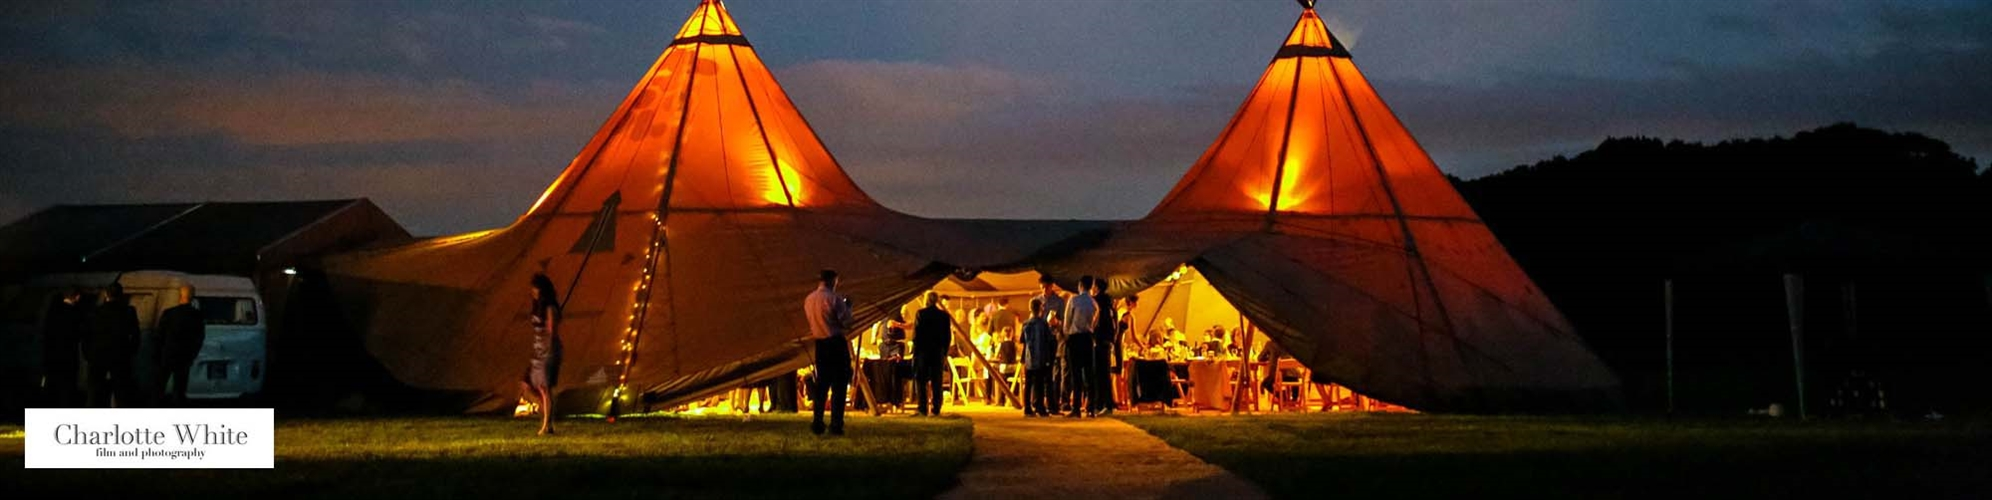 papakata tents weddings engaged wedding venue outdoor